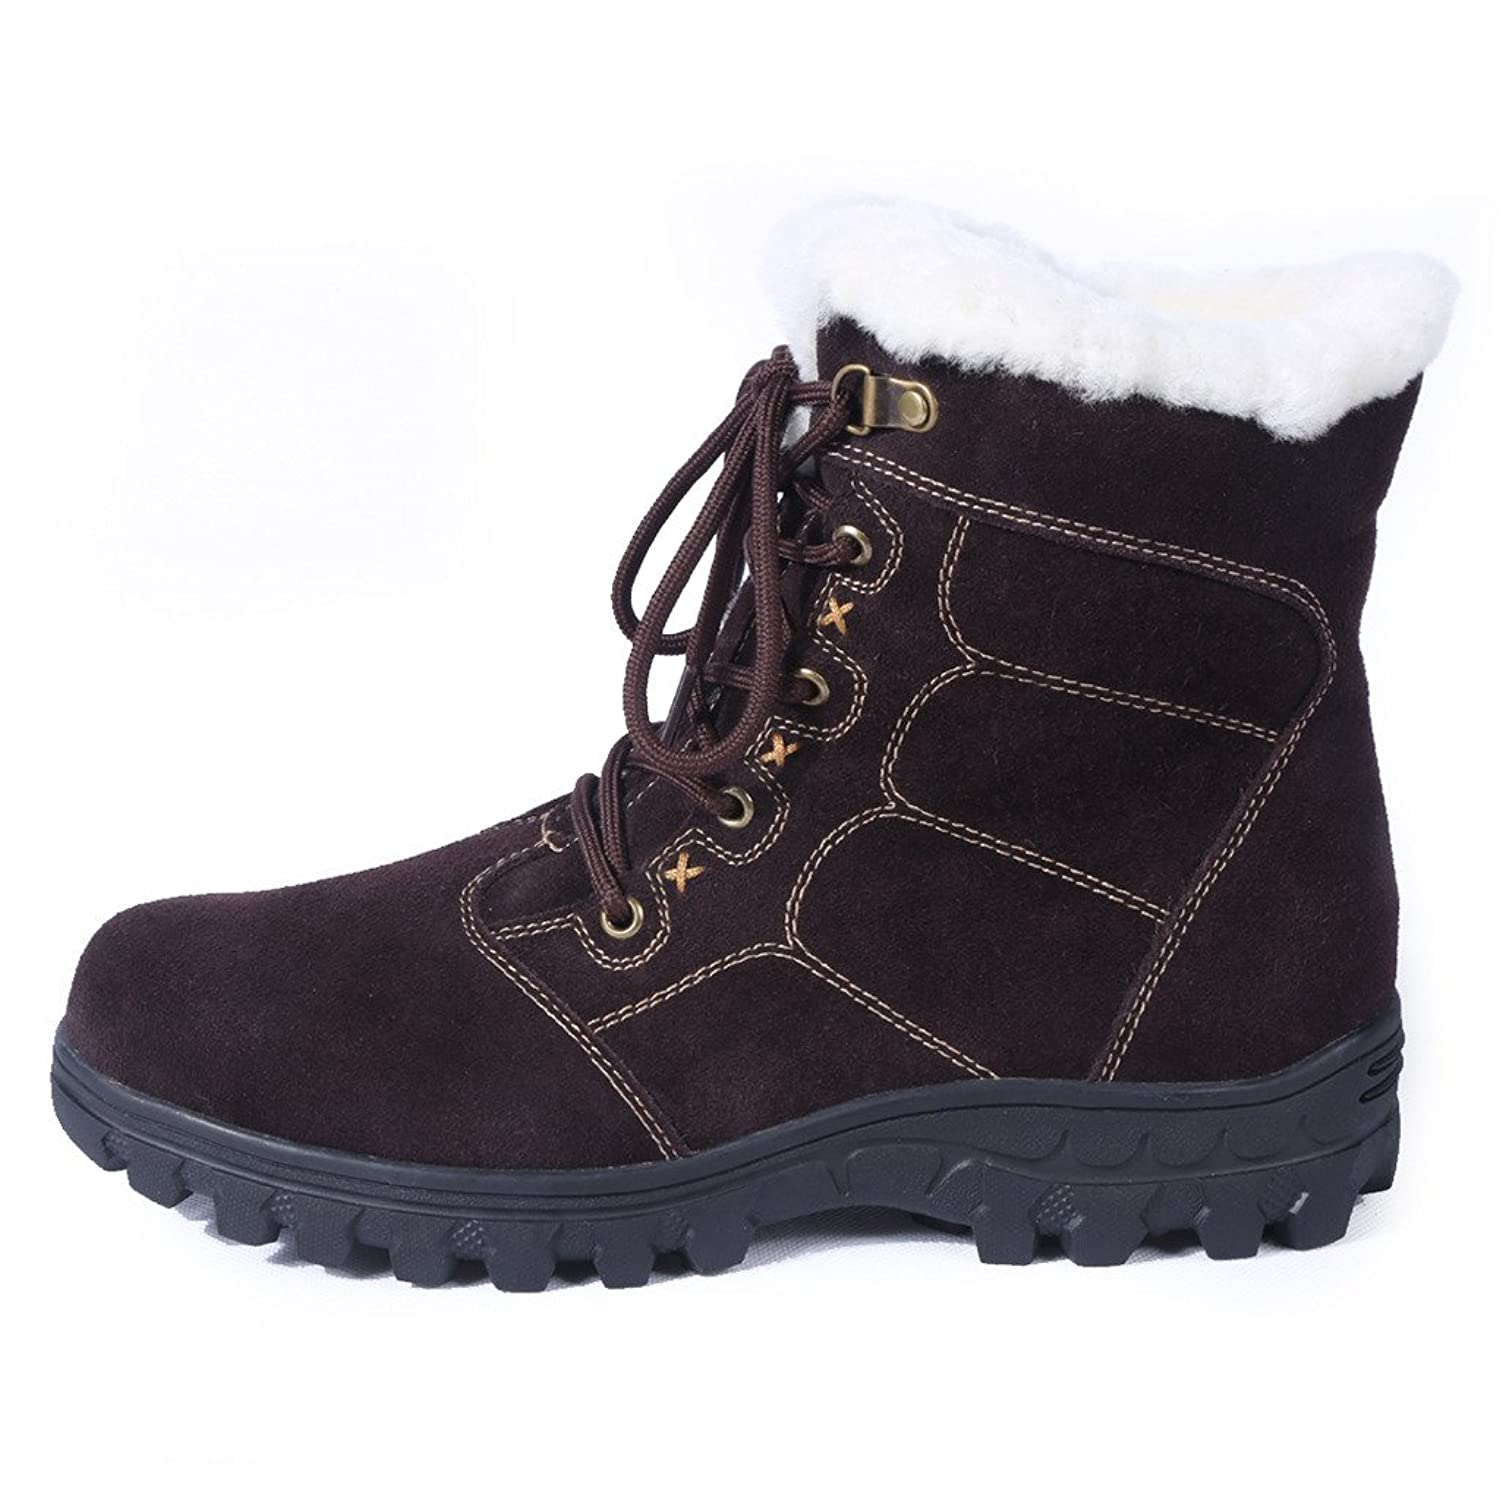 Bull Titan Women's Fur Lined Cold Weather Winter Non-Slip Ankle Boots